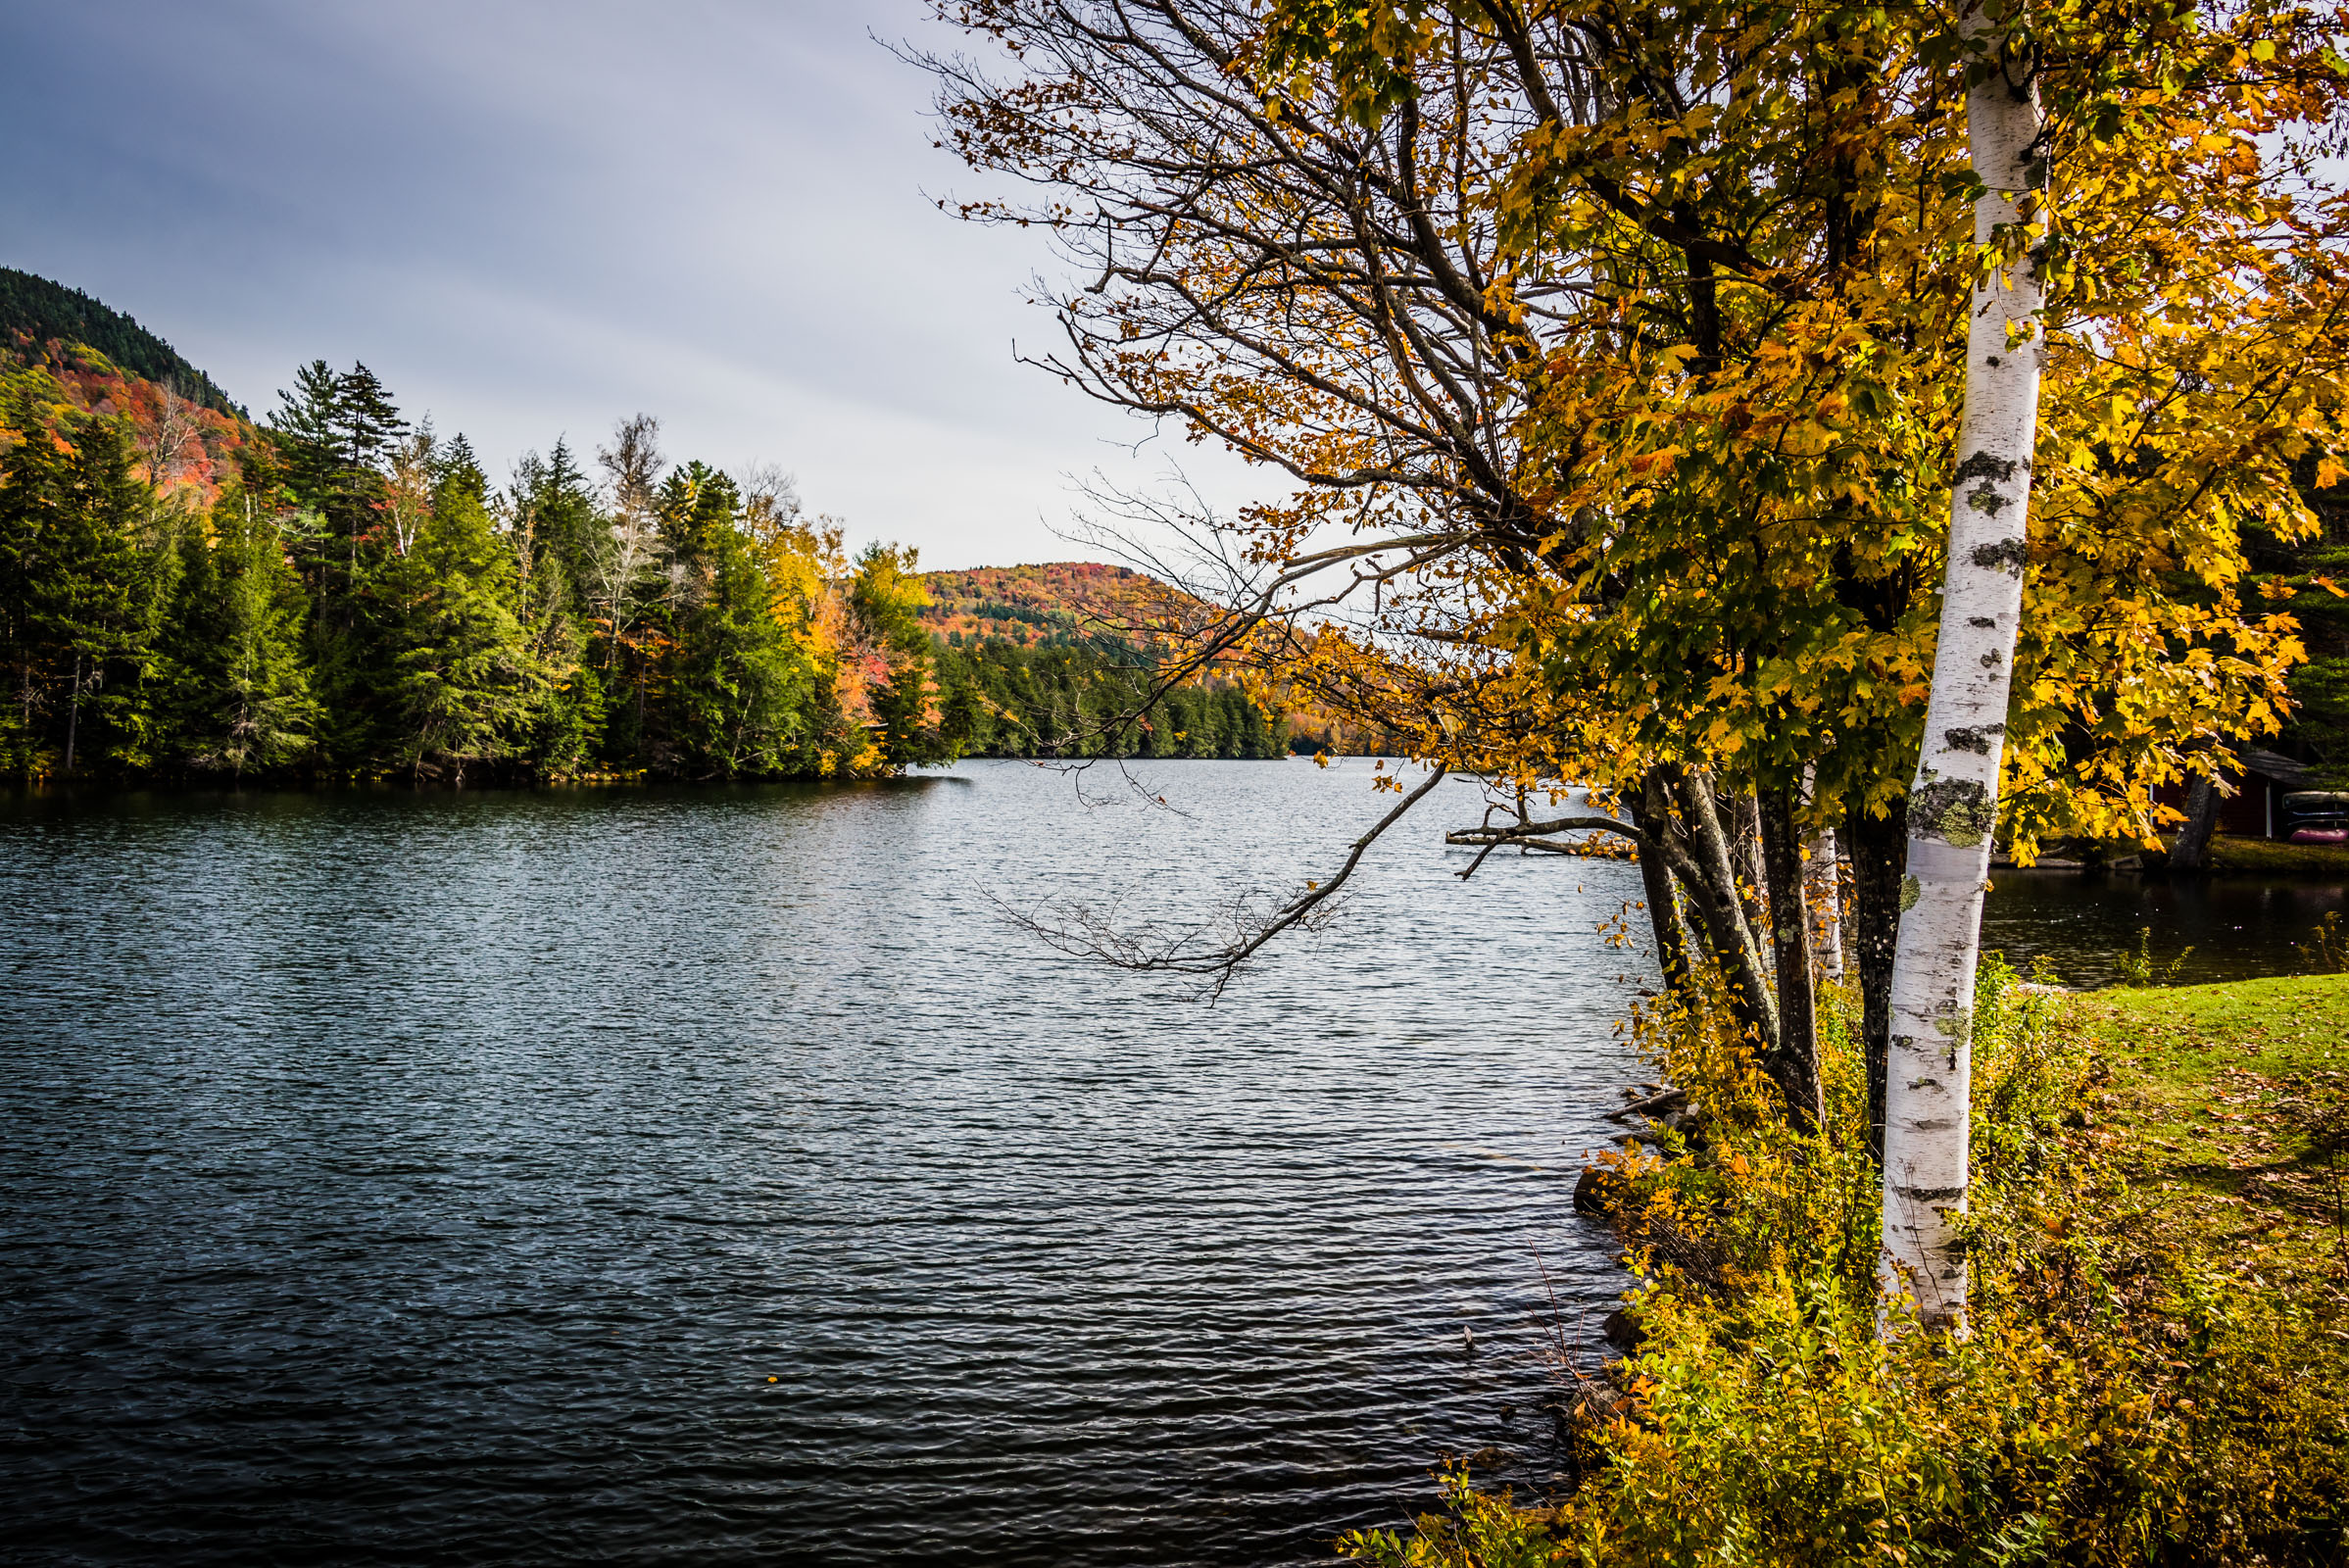 vermont landscape with colorful fall foliage by a lake, photographed by jamie bannon photography.